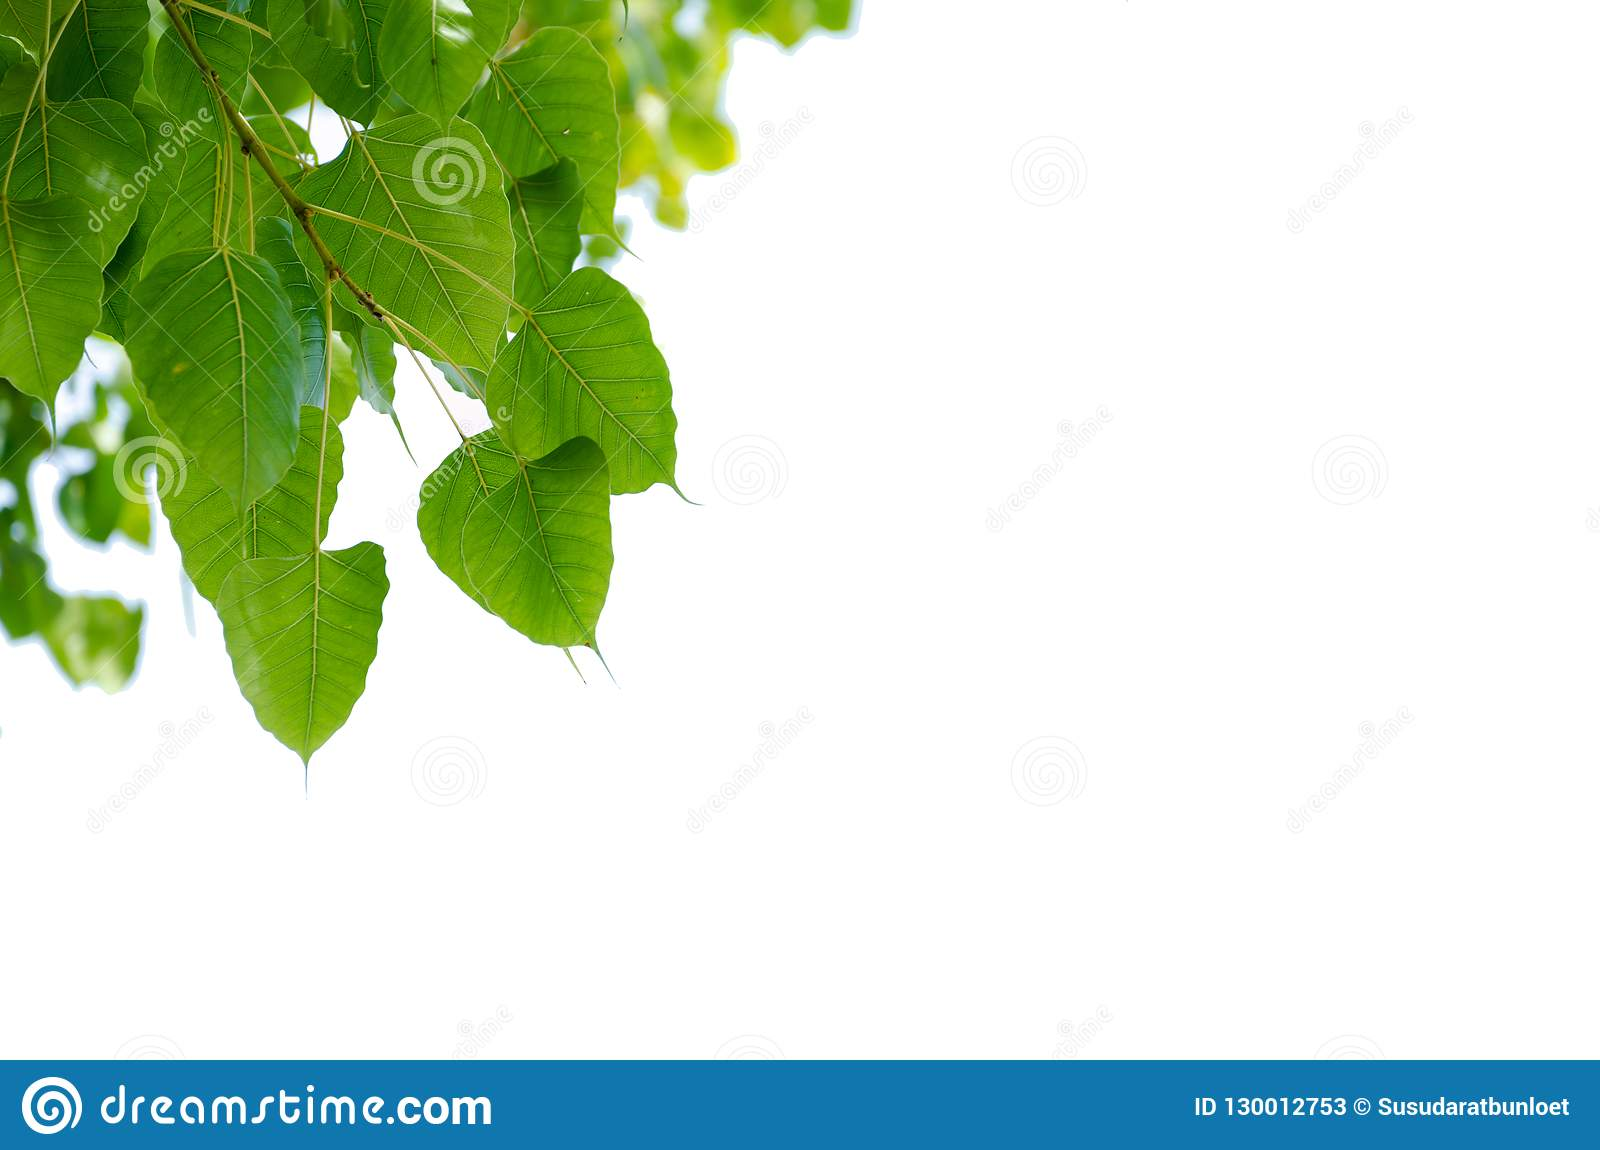 Beautiful picture frame made from green leaves on white background, picture frame Leaves